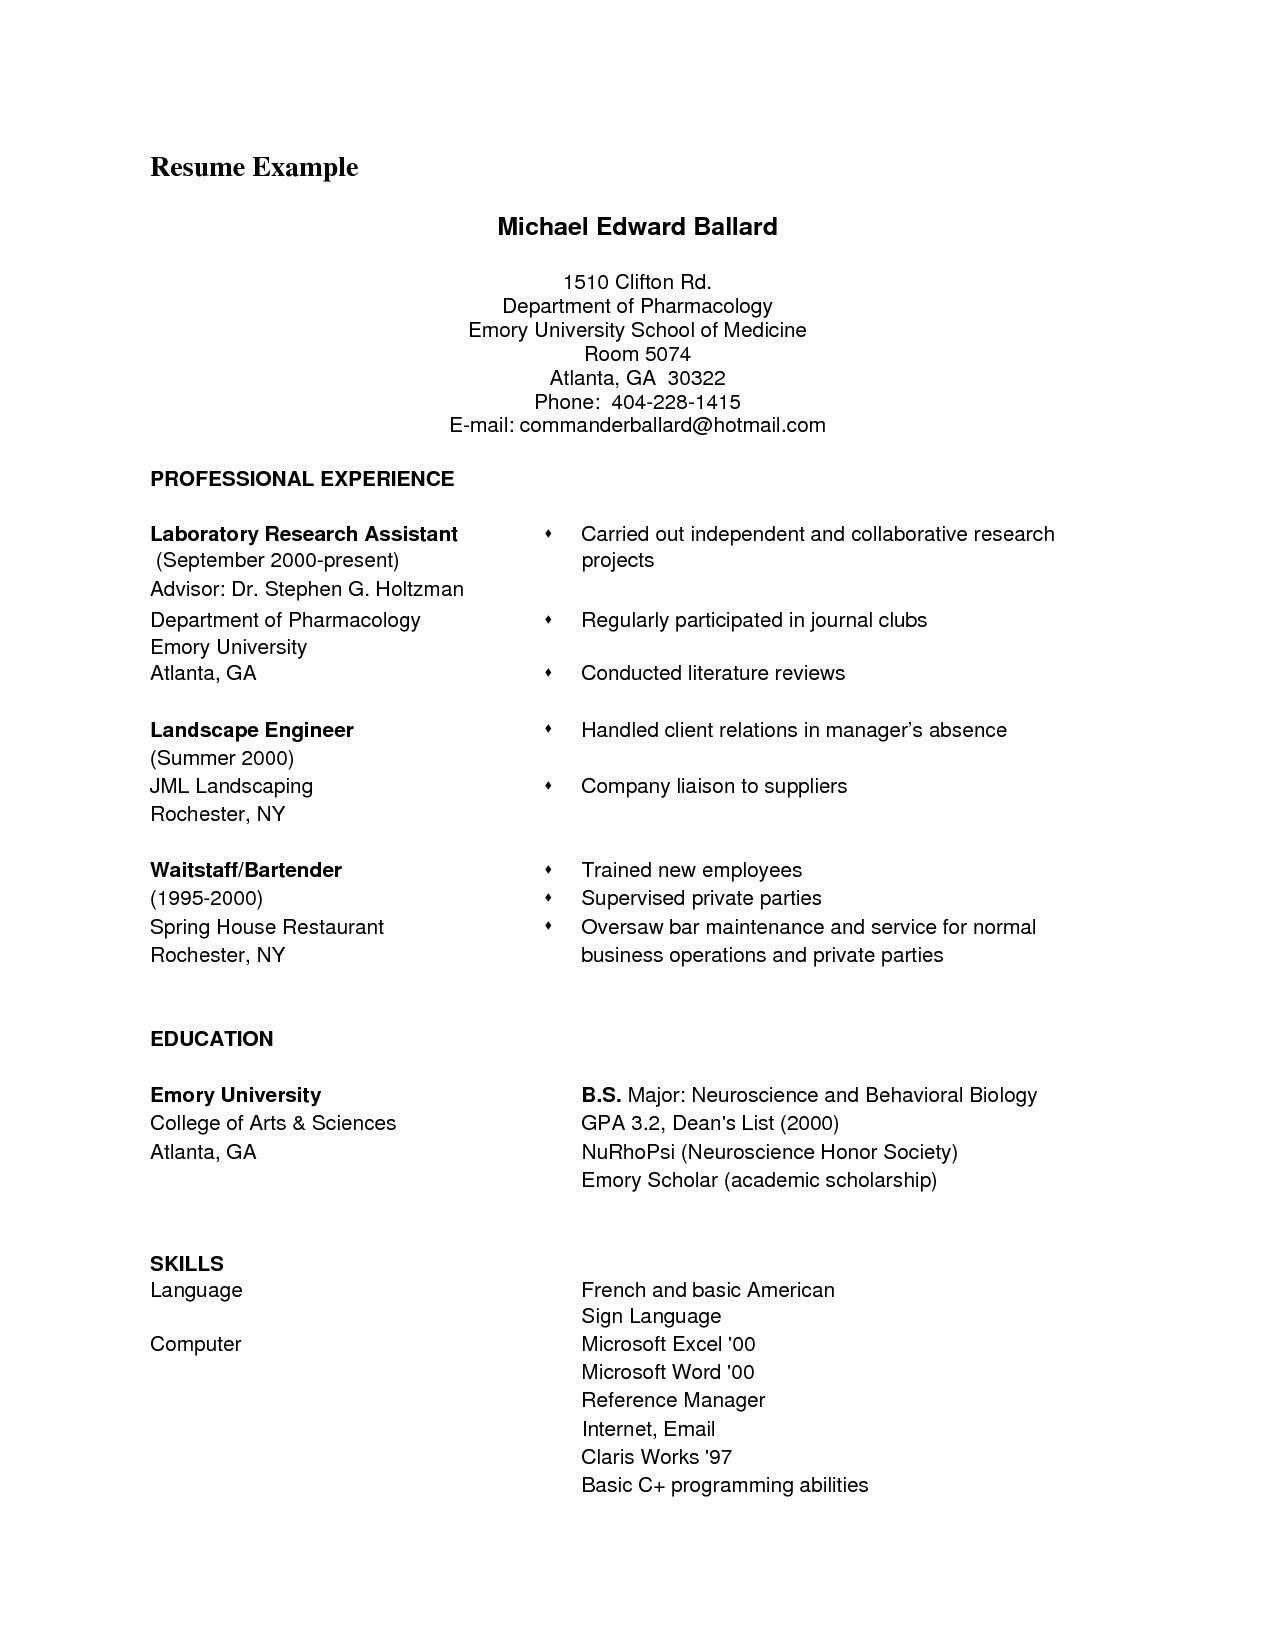 Resume Template for Scientist - Classic Resume Templates ¢Ë†Å¡ Powerpoint Templates for Biology New